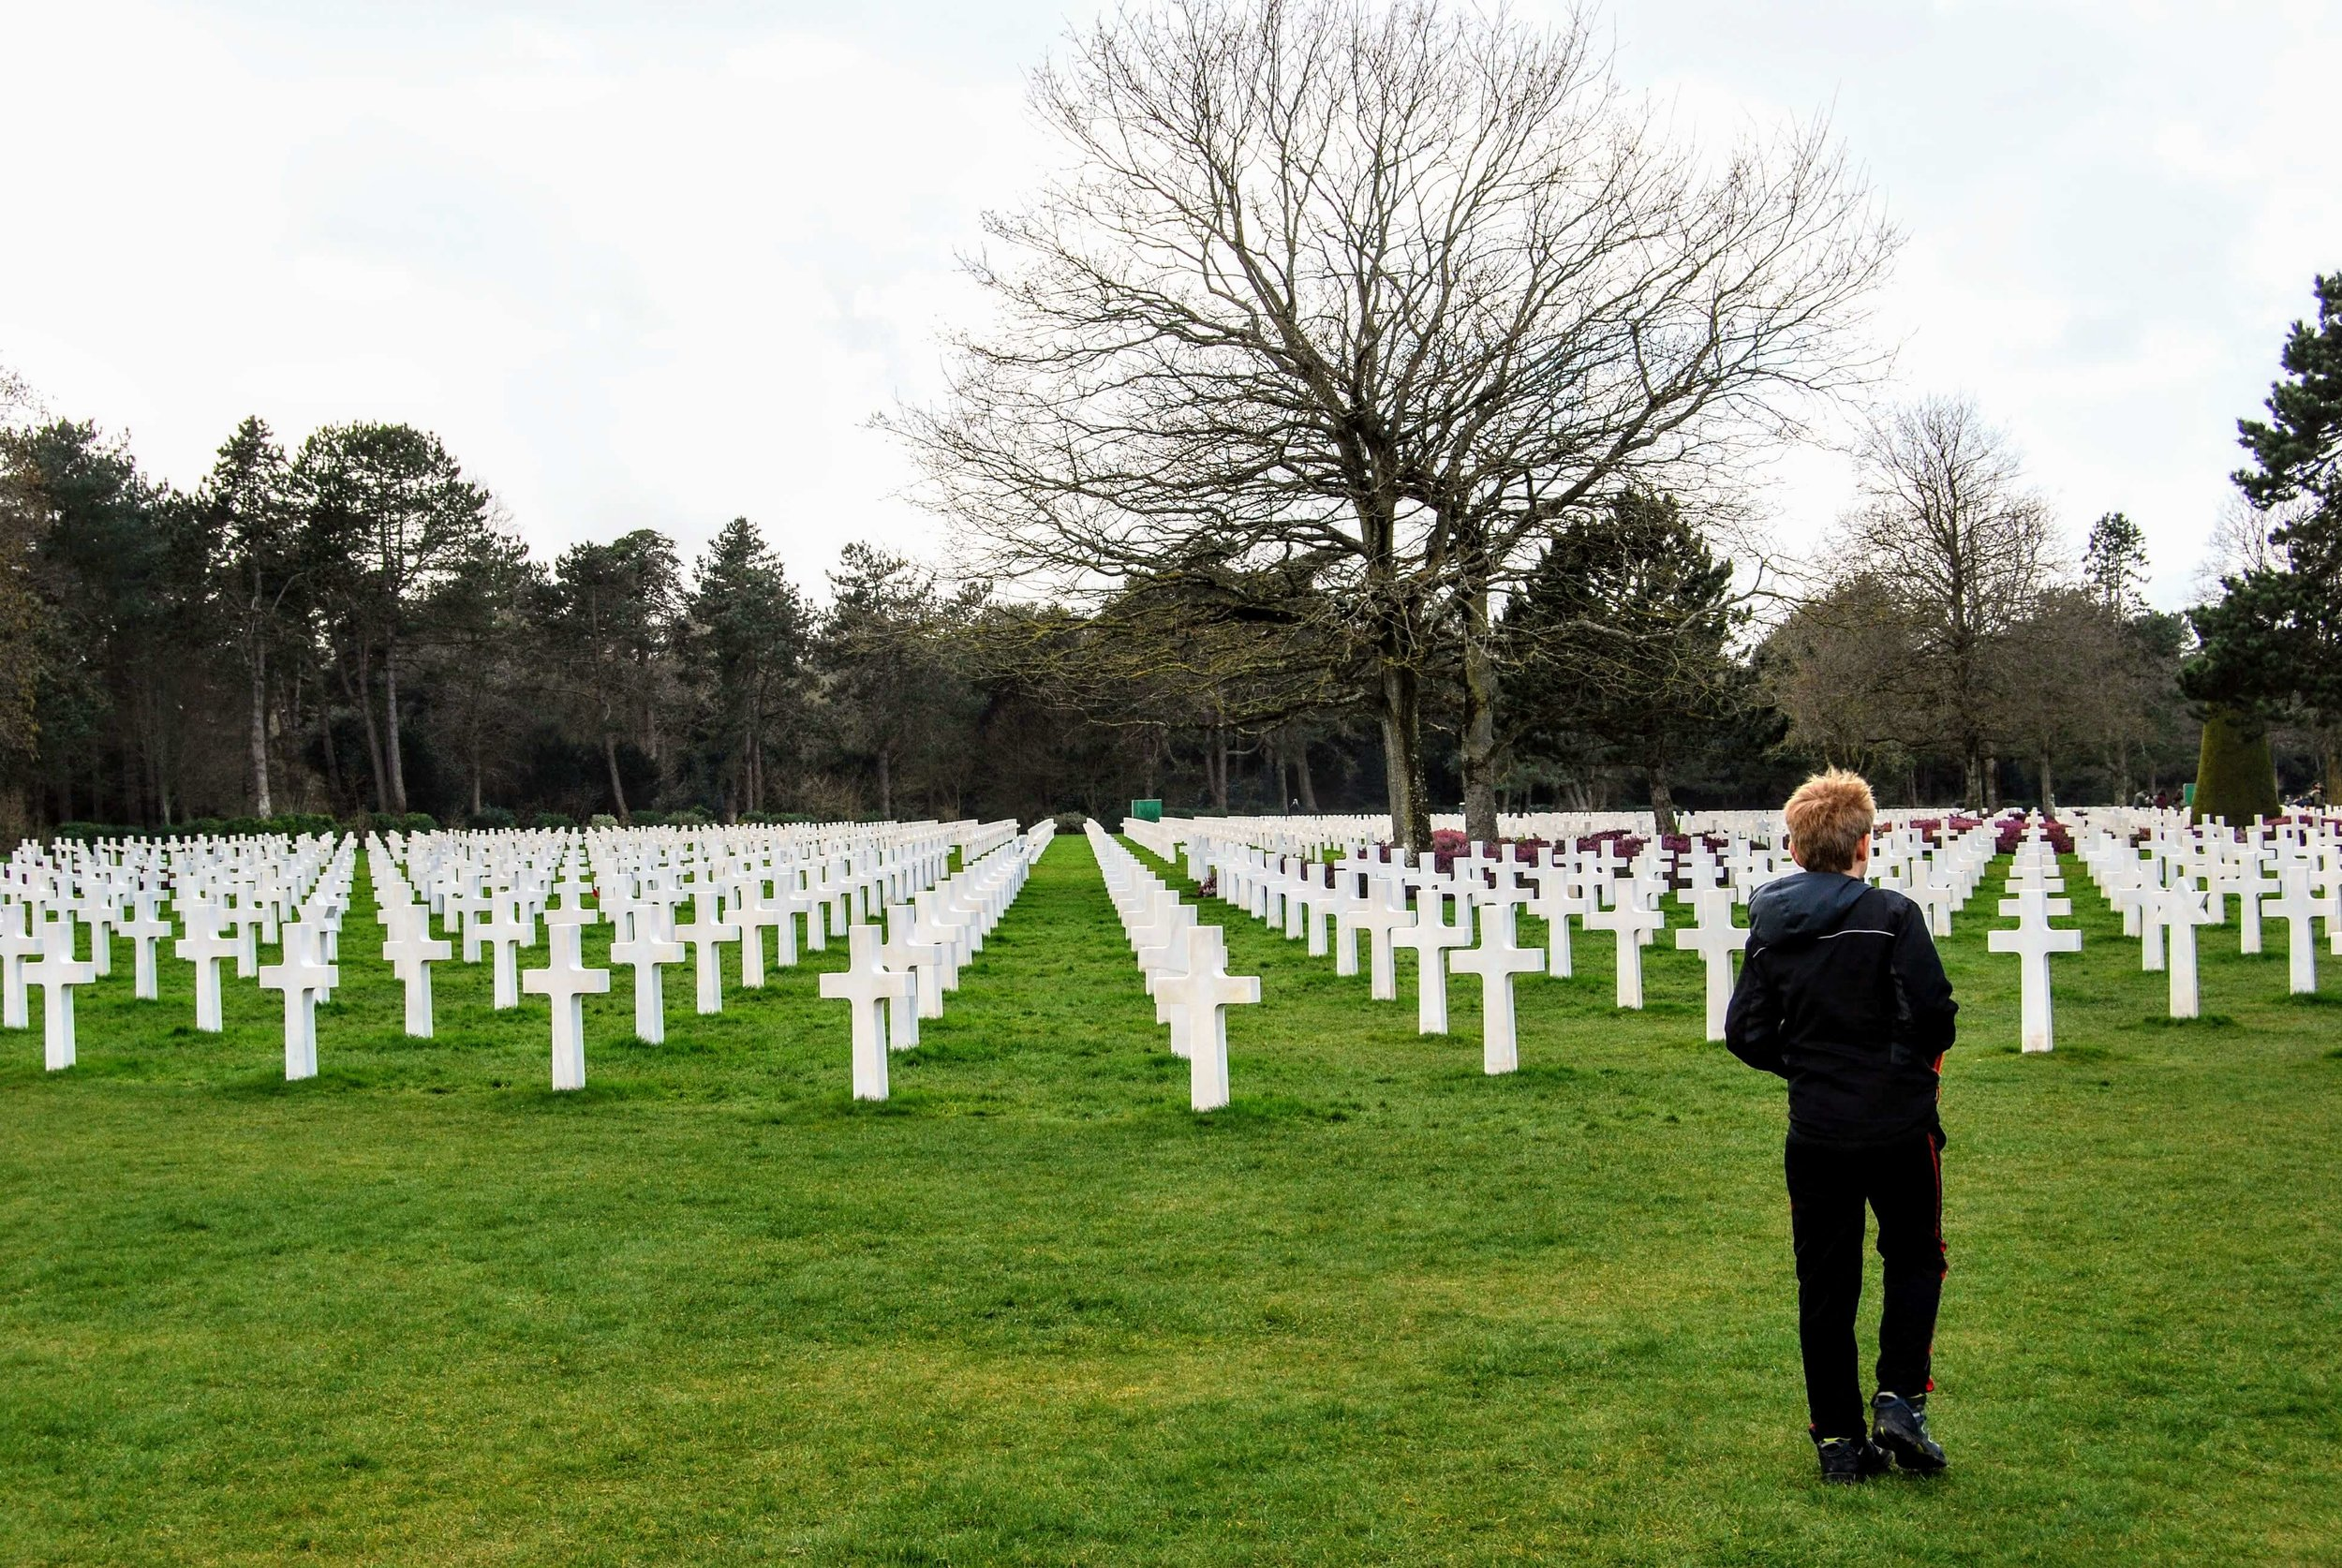 Walking among the graves at the American Cemetery